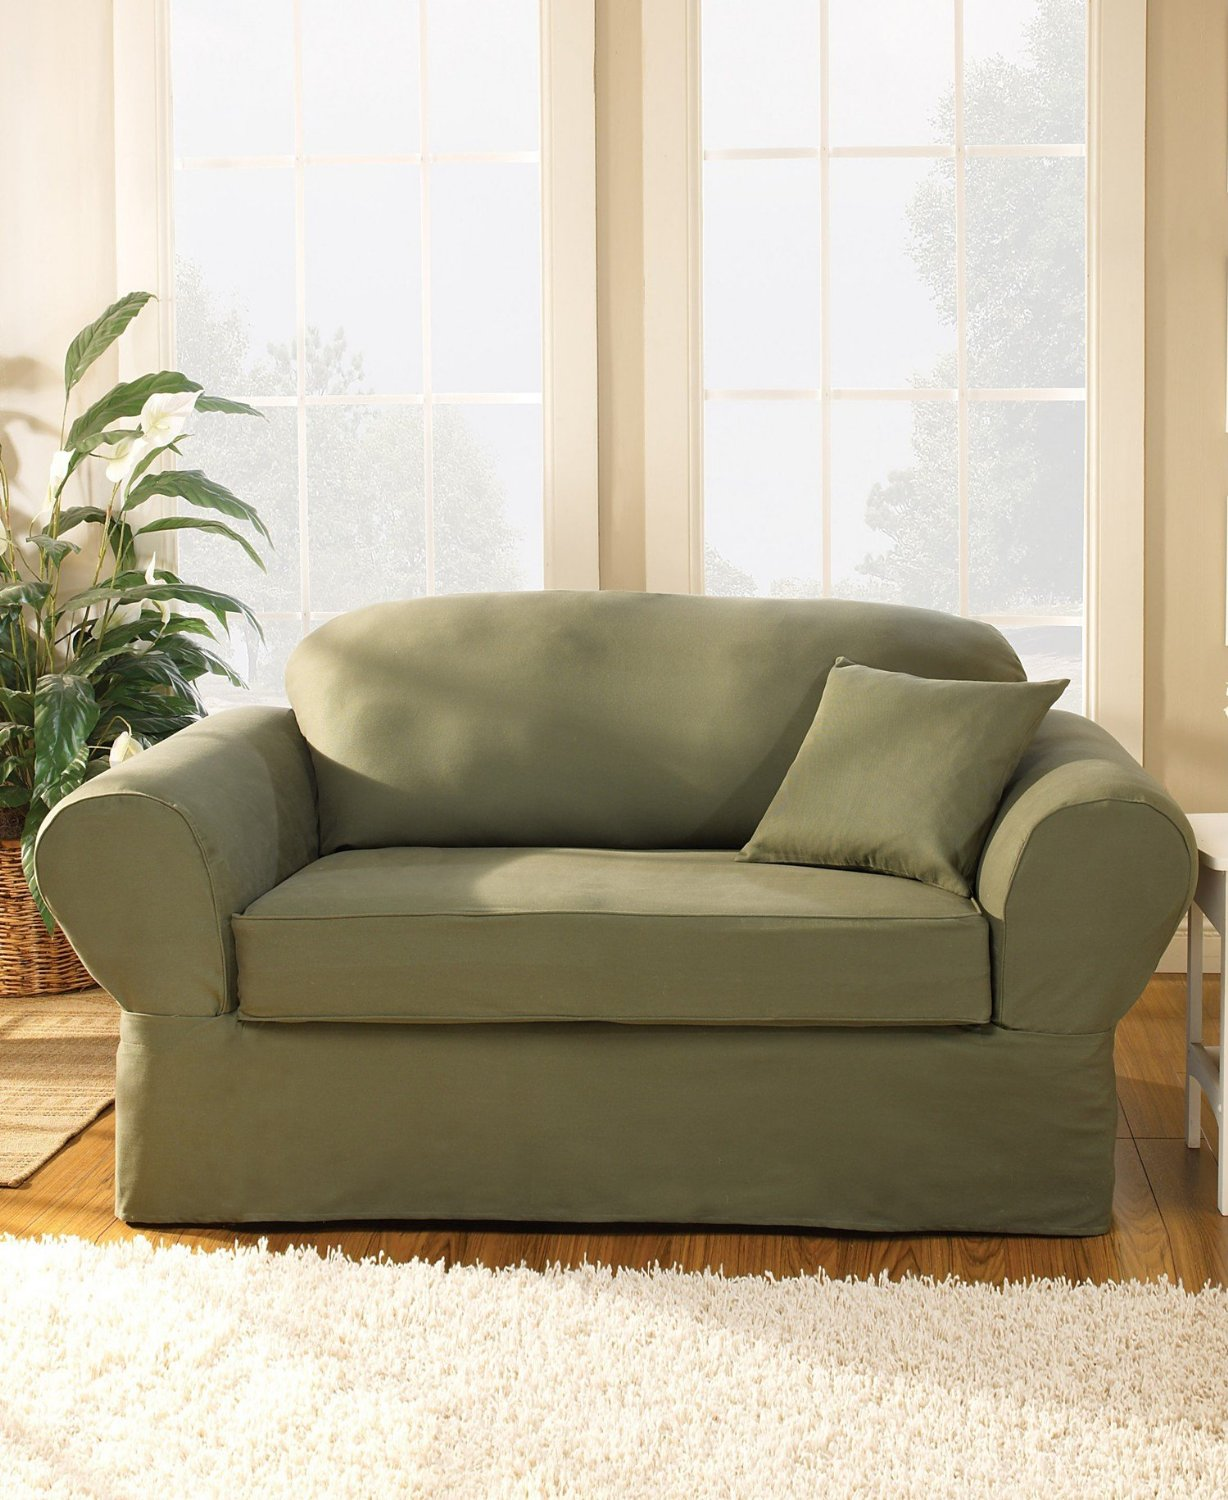 charming sofa with surefit cover in olive on wooden floor for living room decor ideas